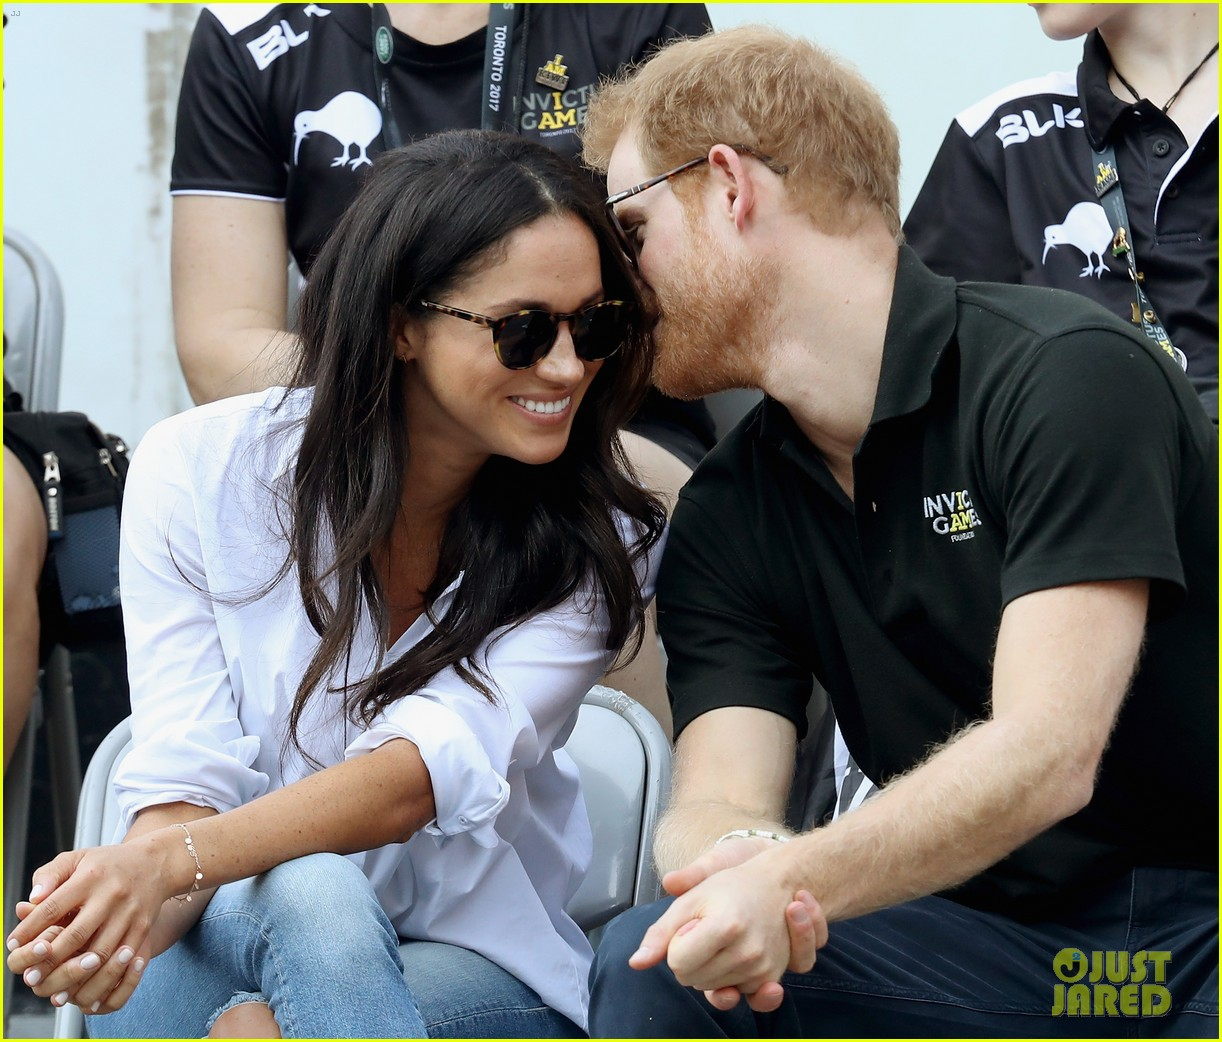 Meghan Markle's first joint appearance with boyfriend Prince Harry